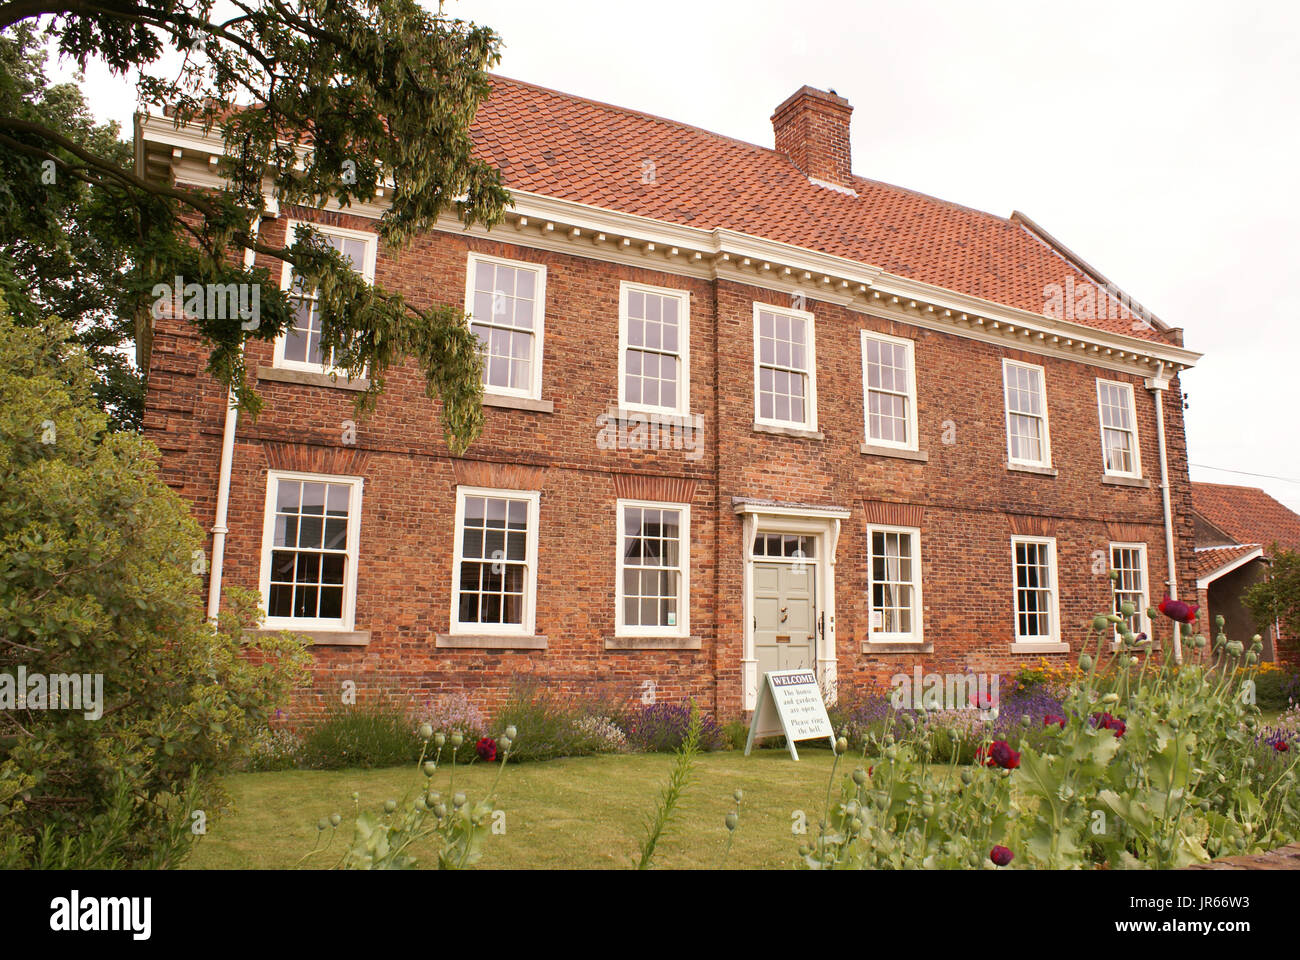 Old Rectory, Epworth, Lincolnshire - Stock Image